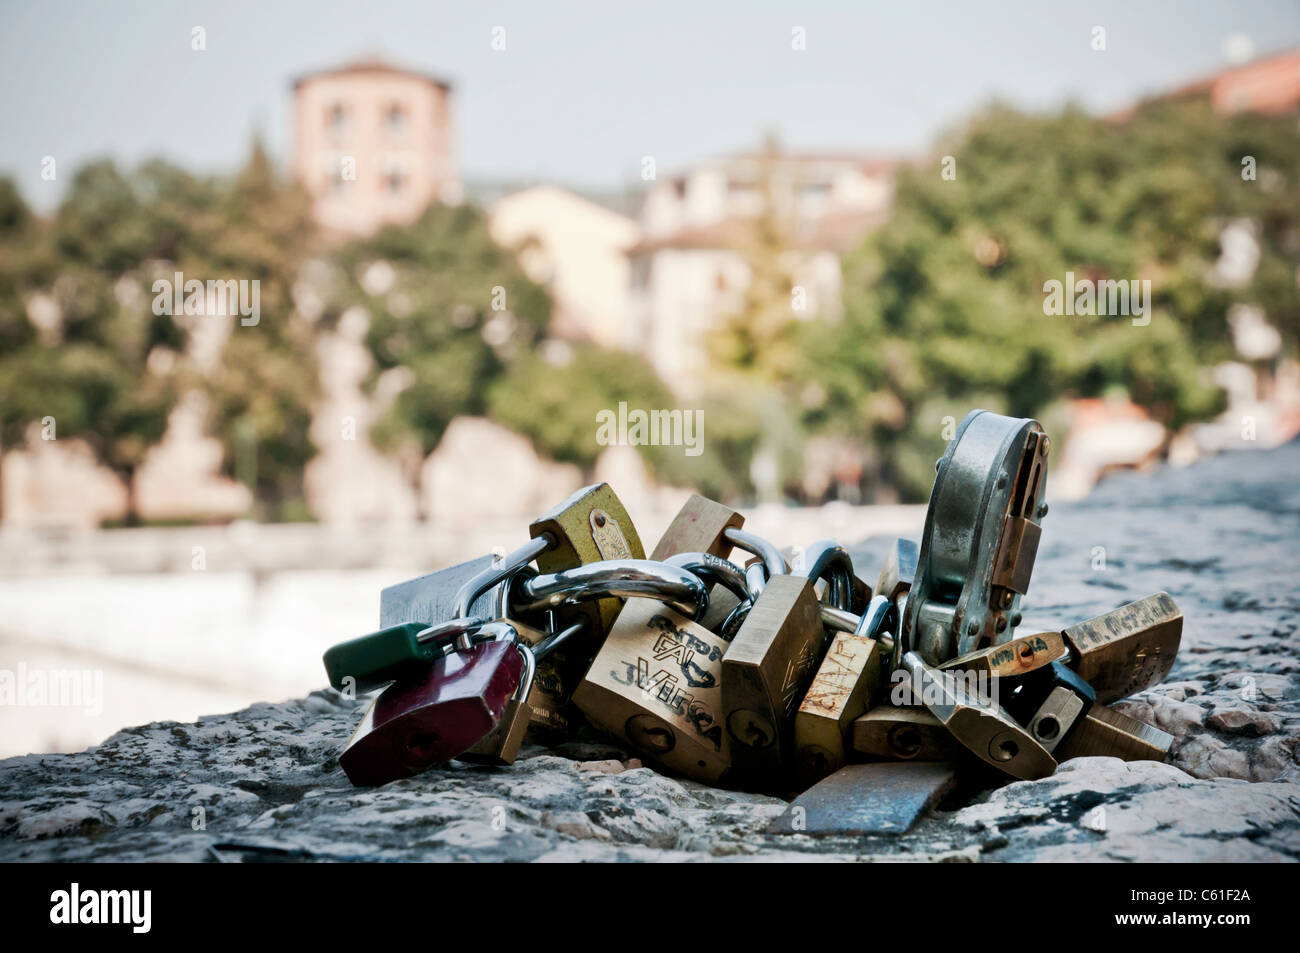 Love Padlocks tied to stone bridge, Verona Italy - Stock Image